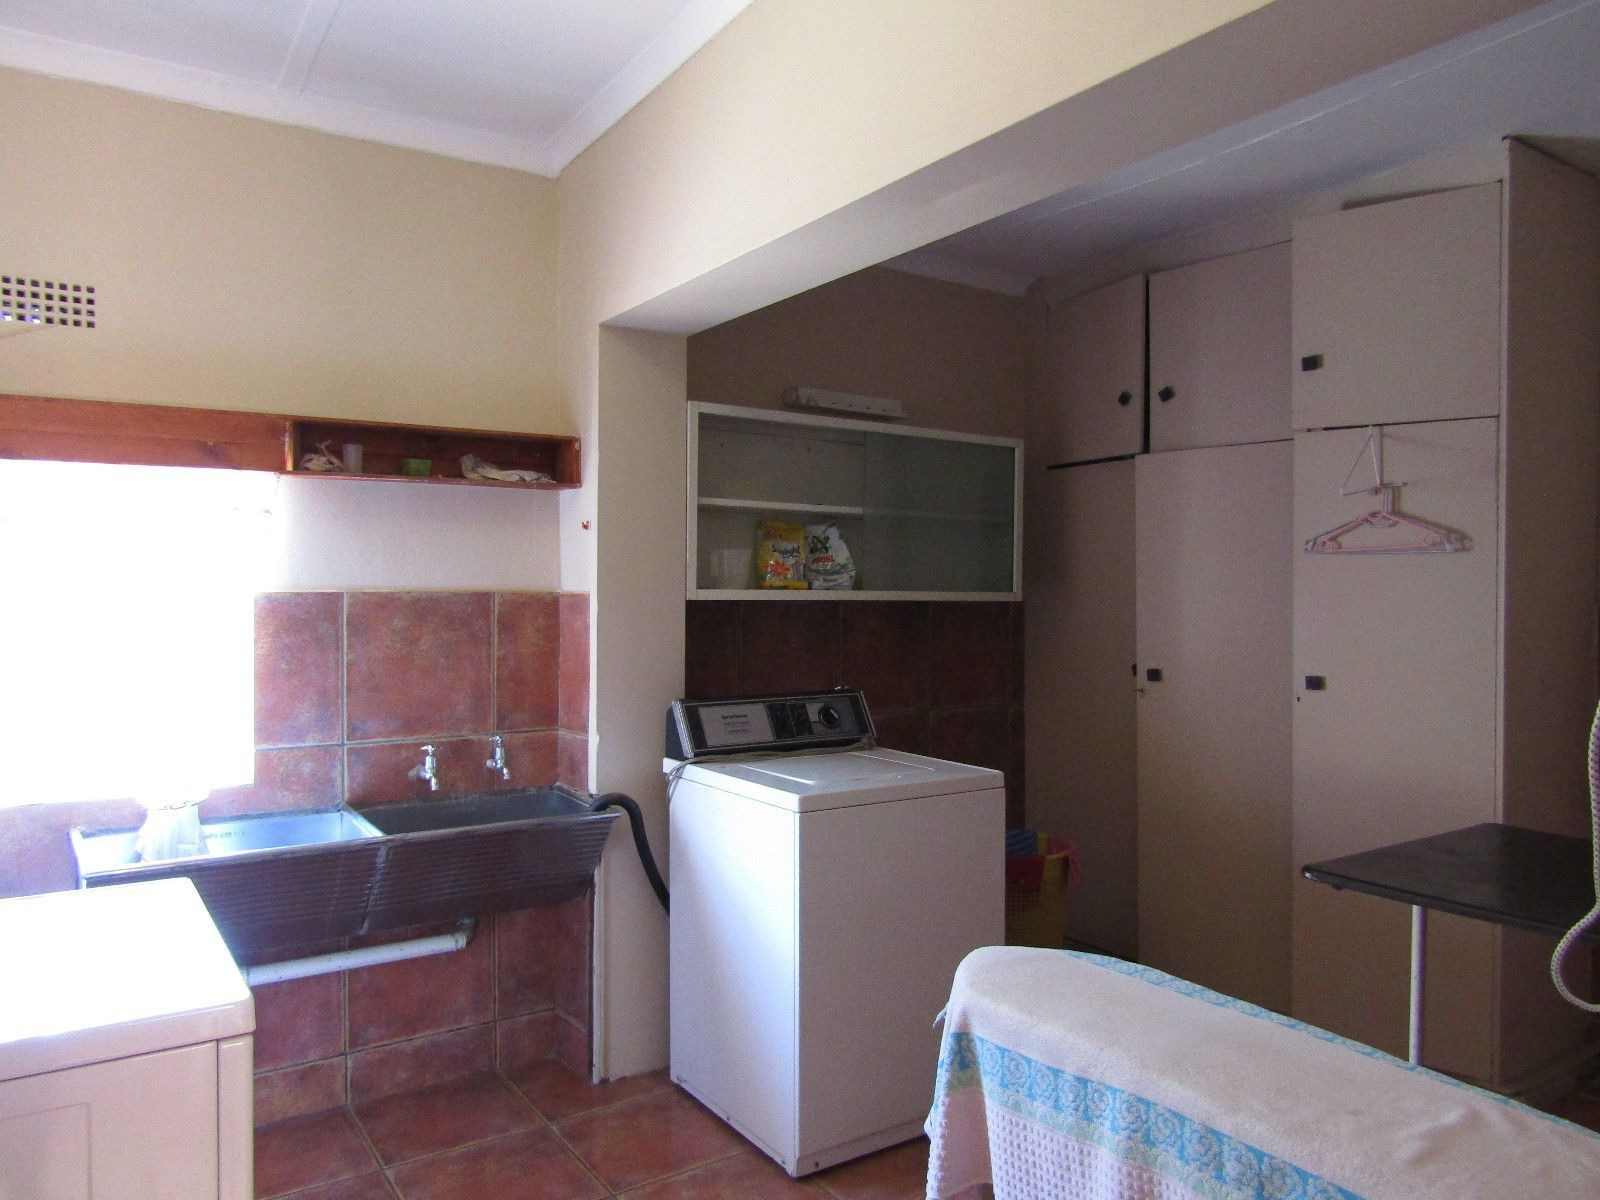 Potchefstroom Central property for sale. Ref No: 13444543. Picture no 18